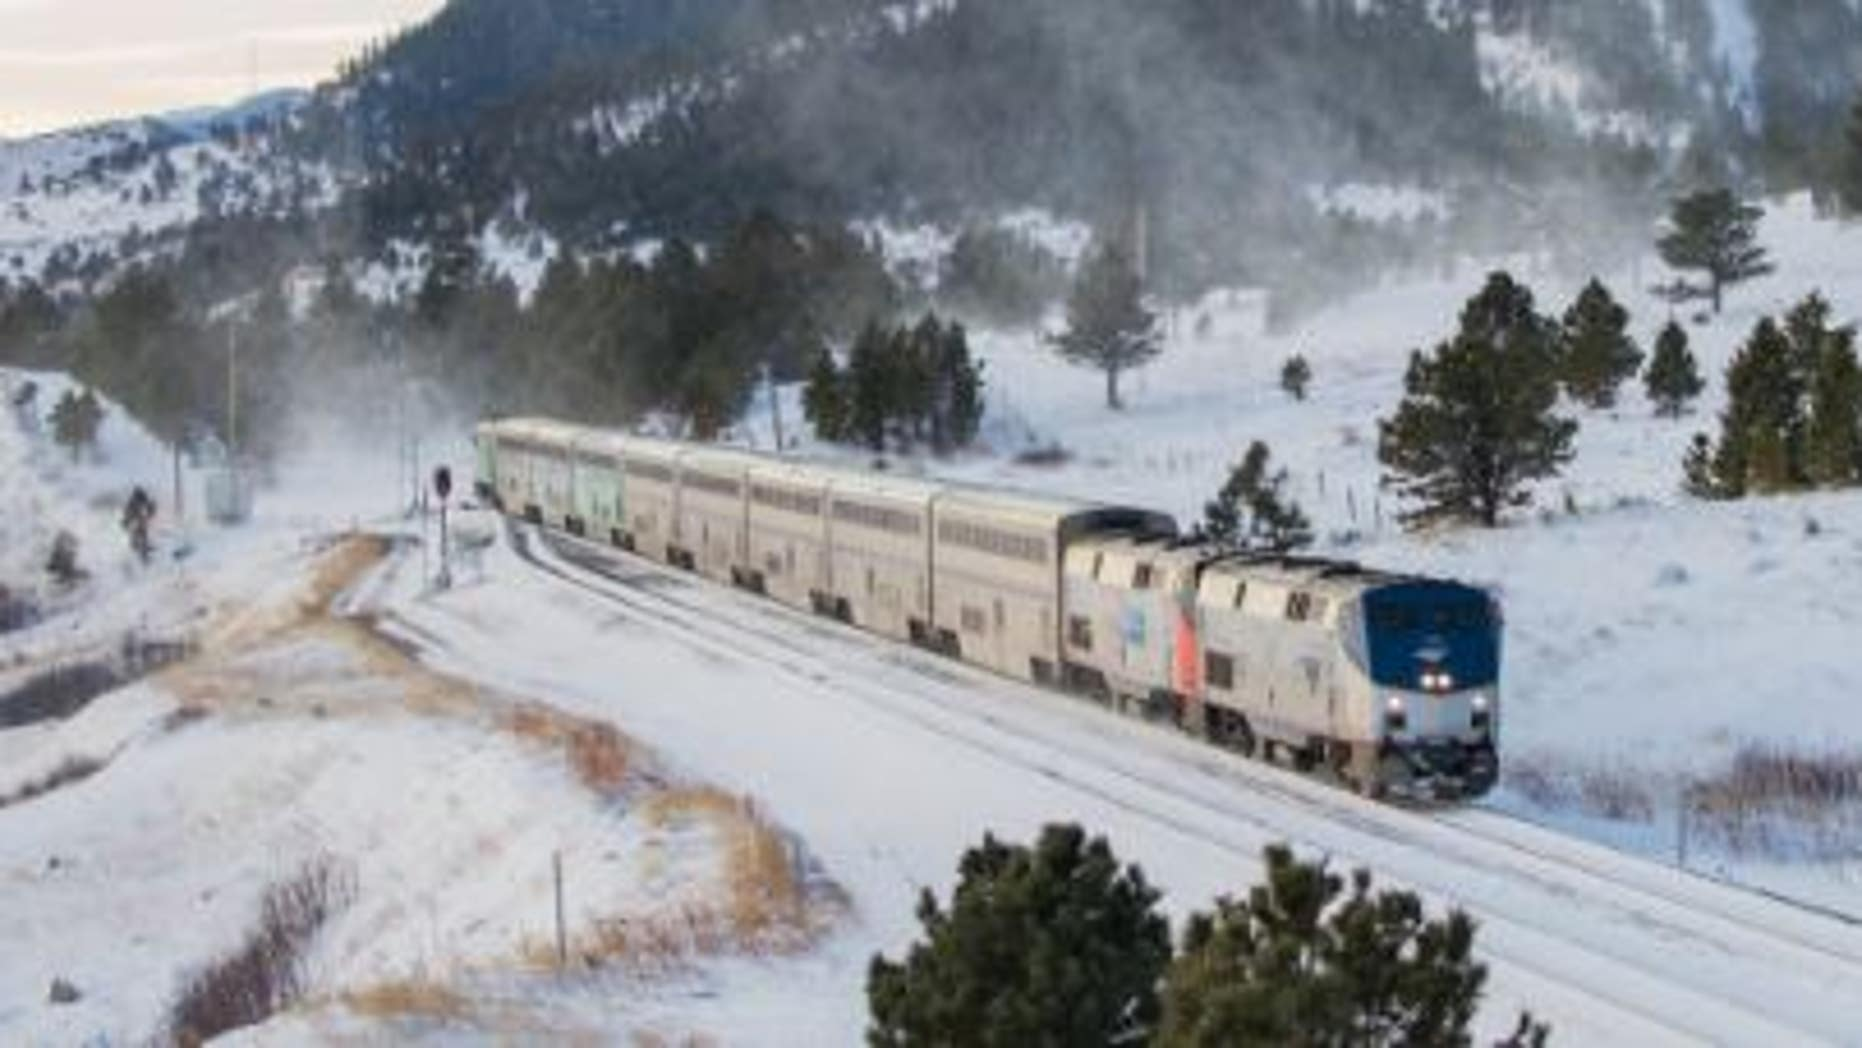 Stranded Amtrak train with 183 passengers is moving again